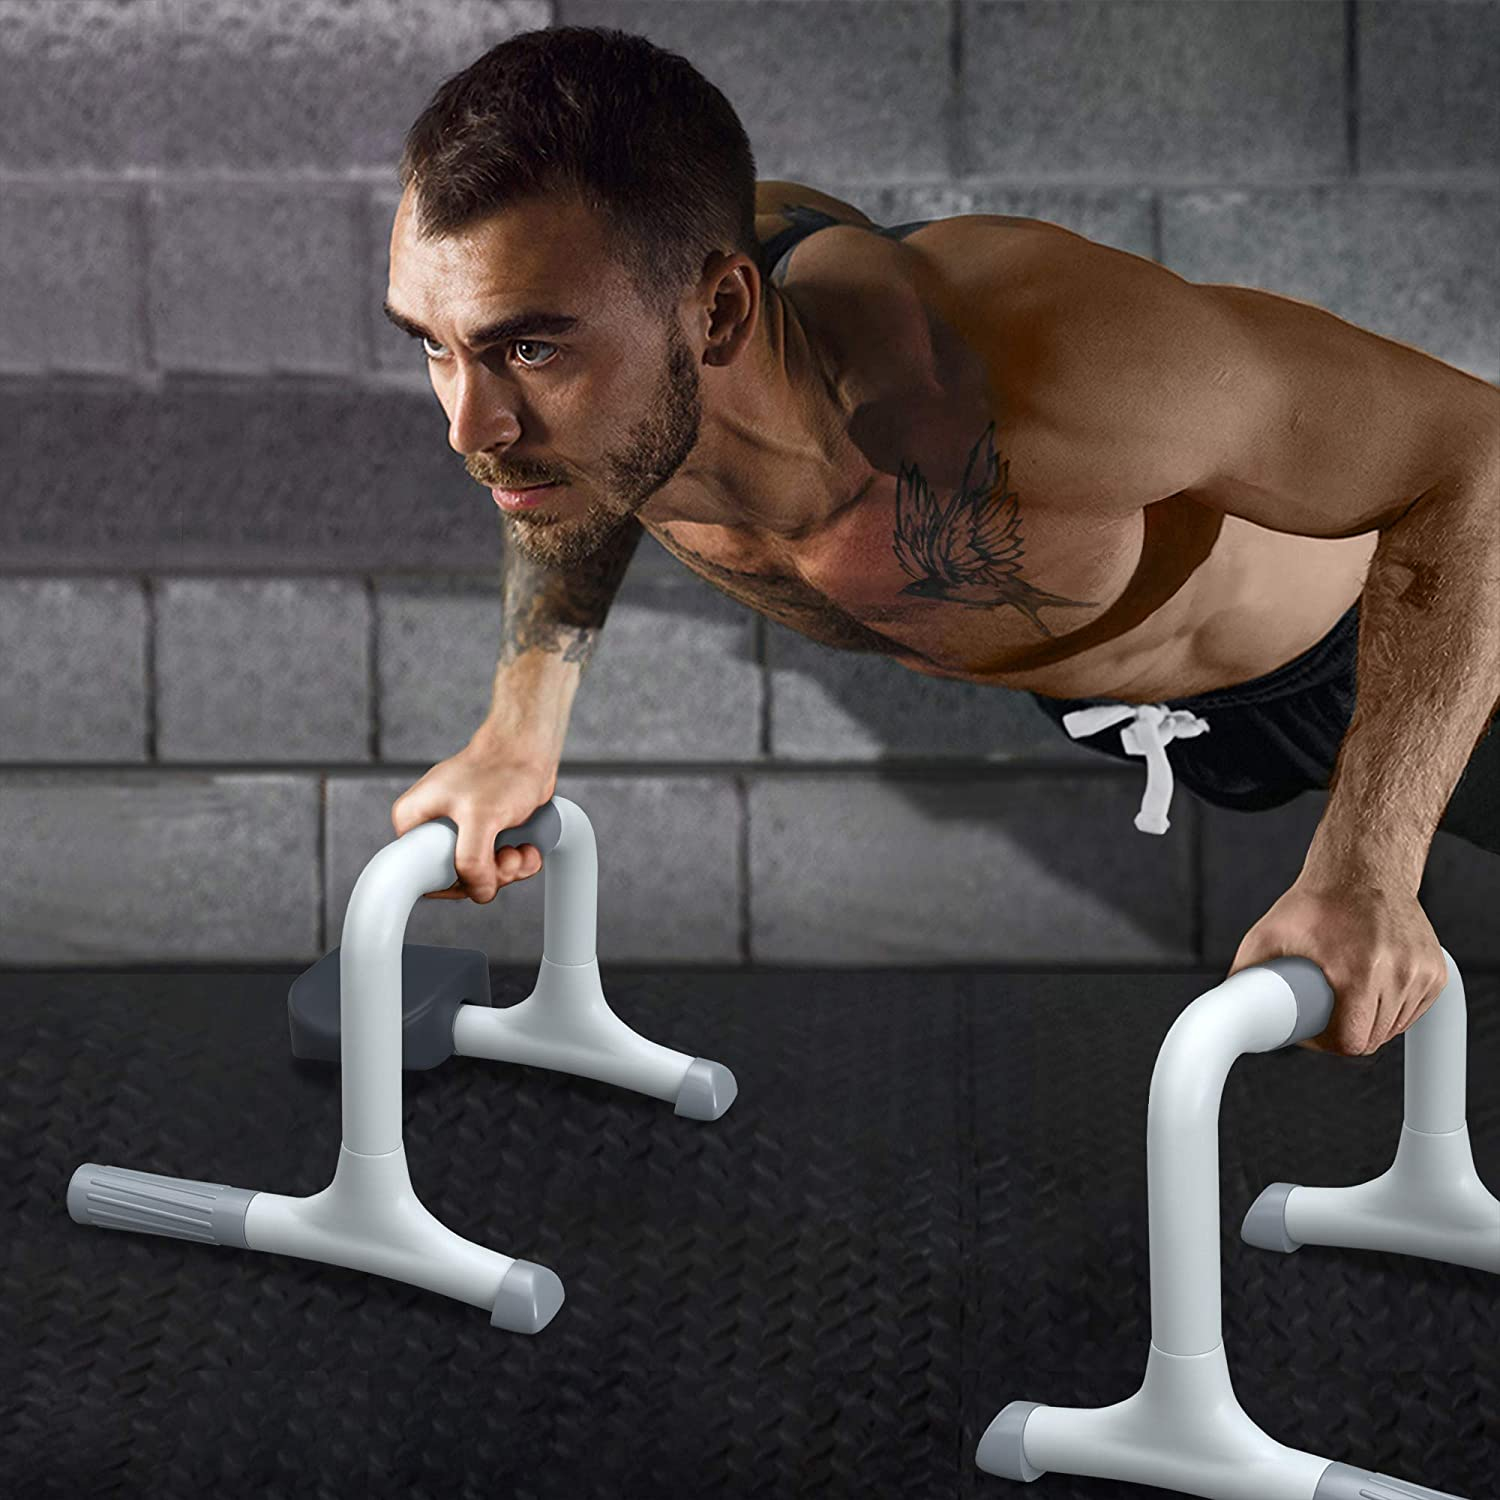 White READAEER 3.0 Update Version Big Size Push Up Bars Gym Exercise Equipment Pushup Stands Set with Elbow Support Anti-slip Pivot Fitness Stands for Men /& Women